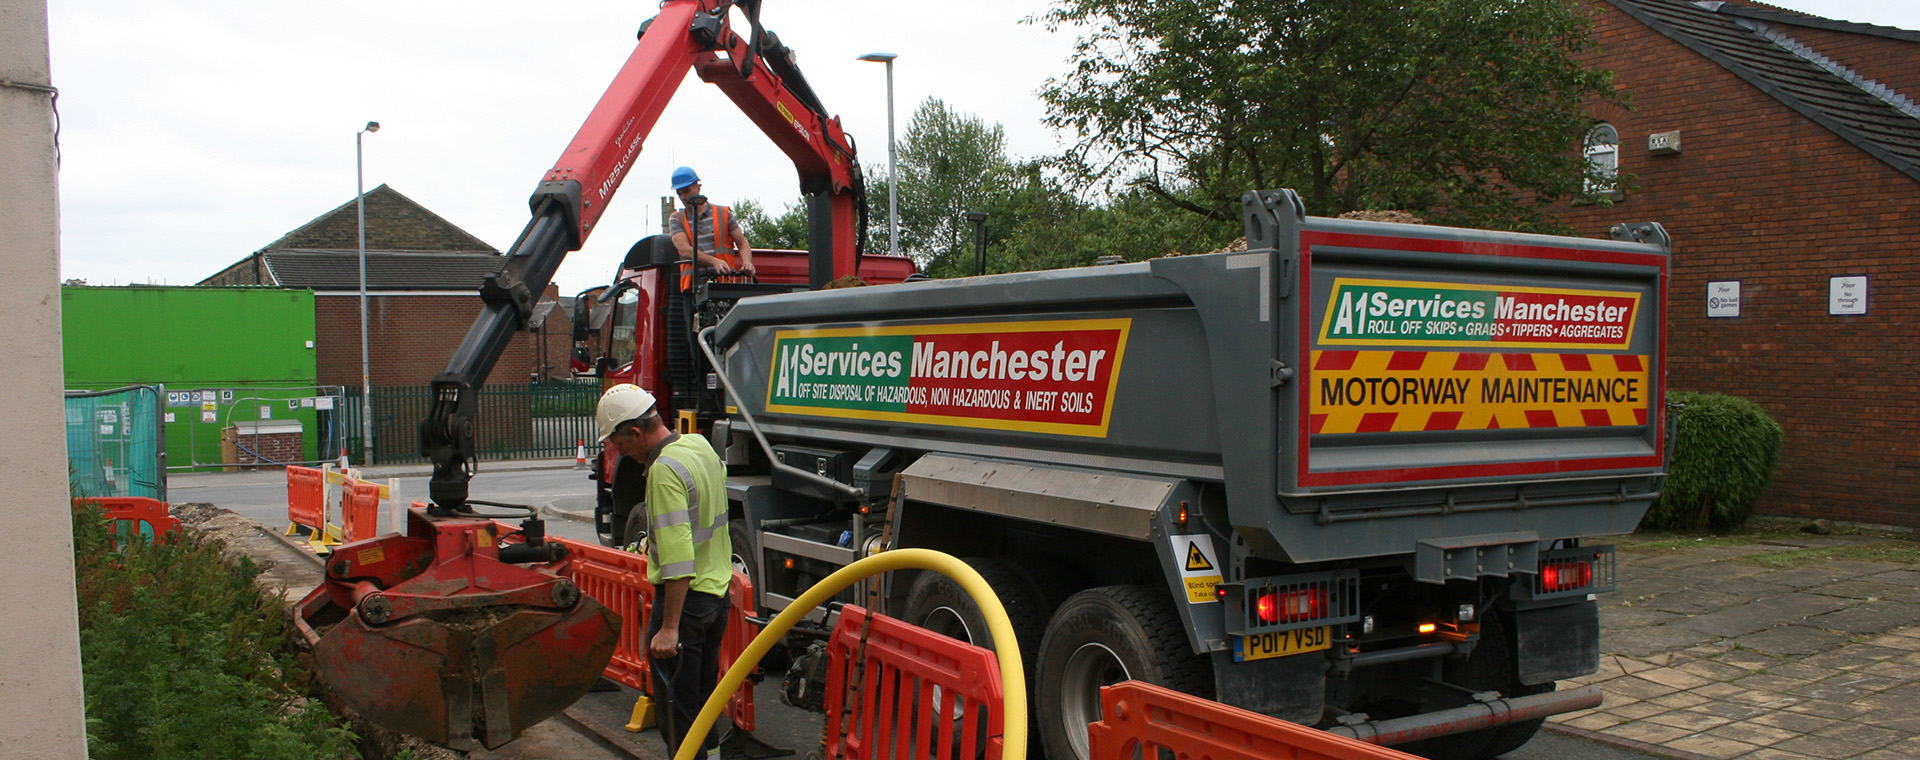 A1 Grab Hire Manchester